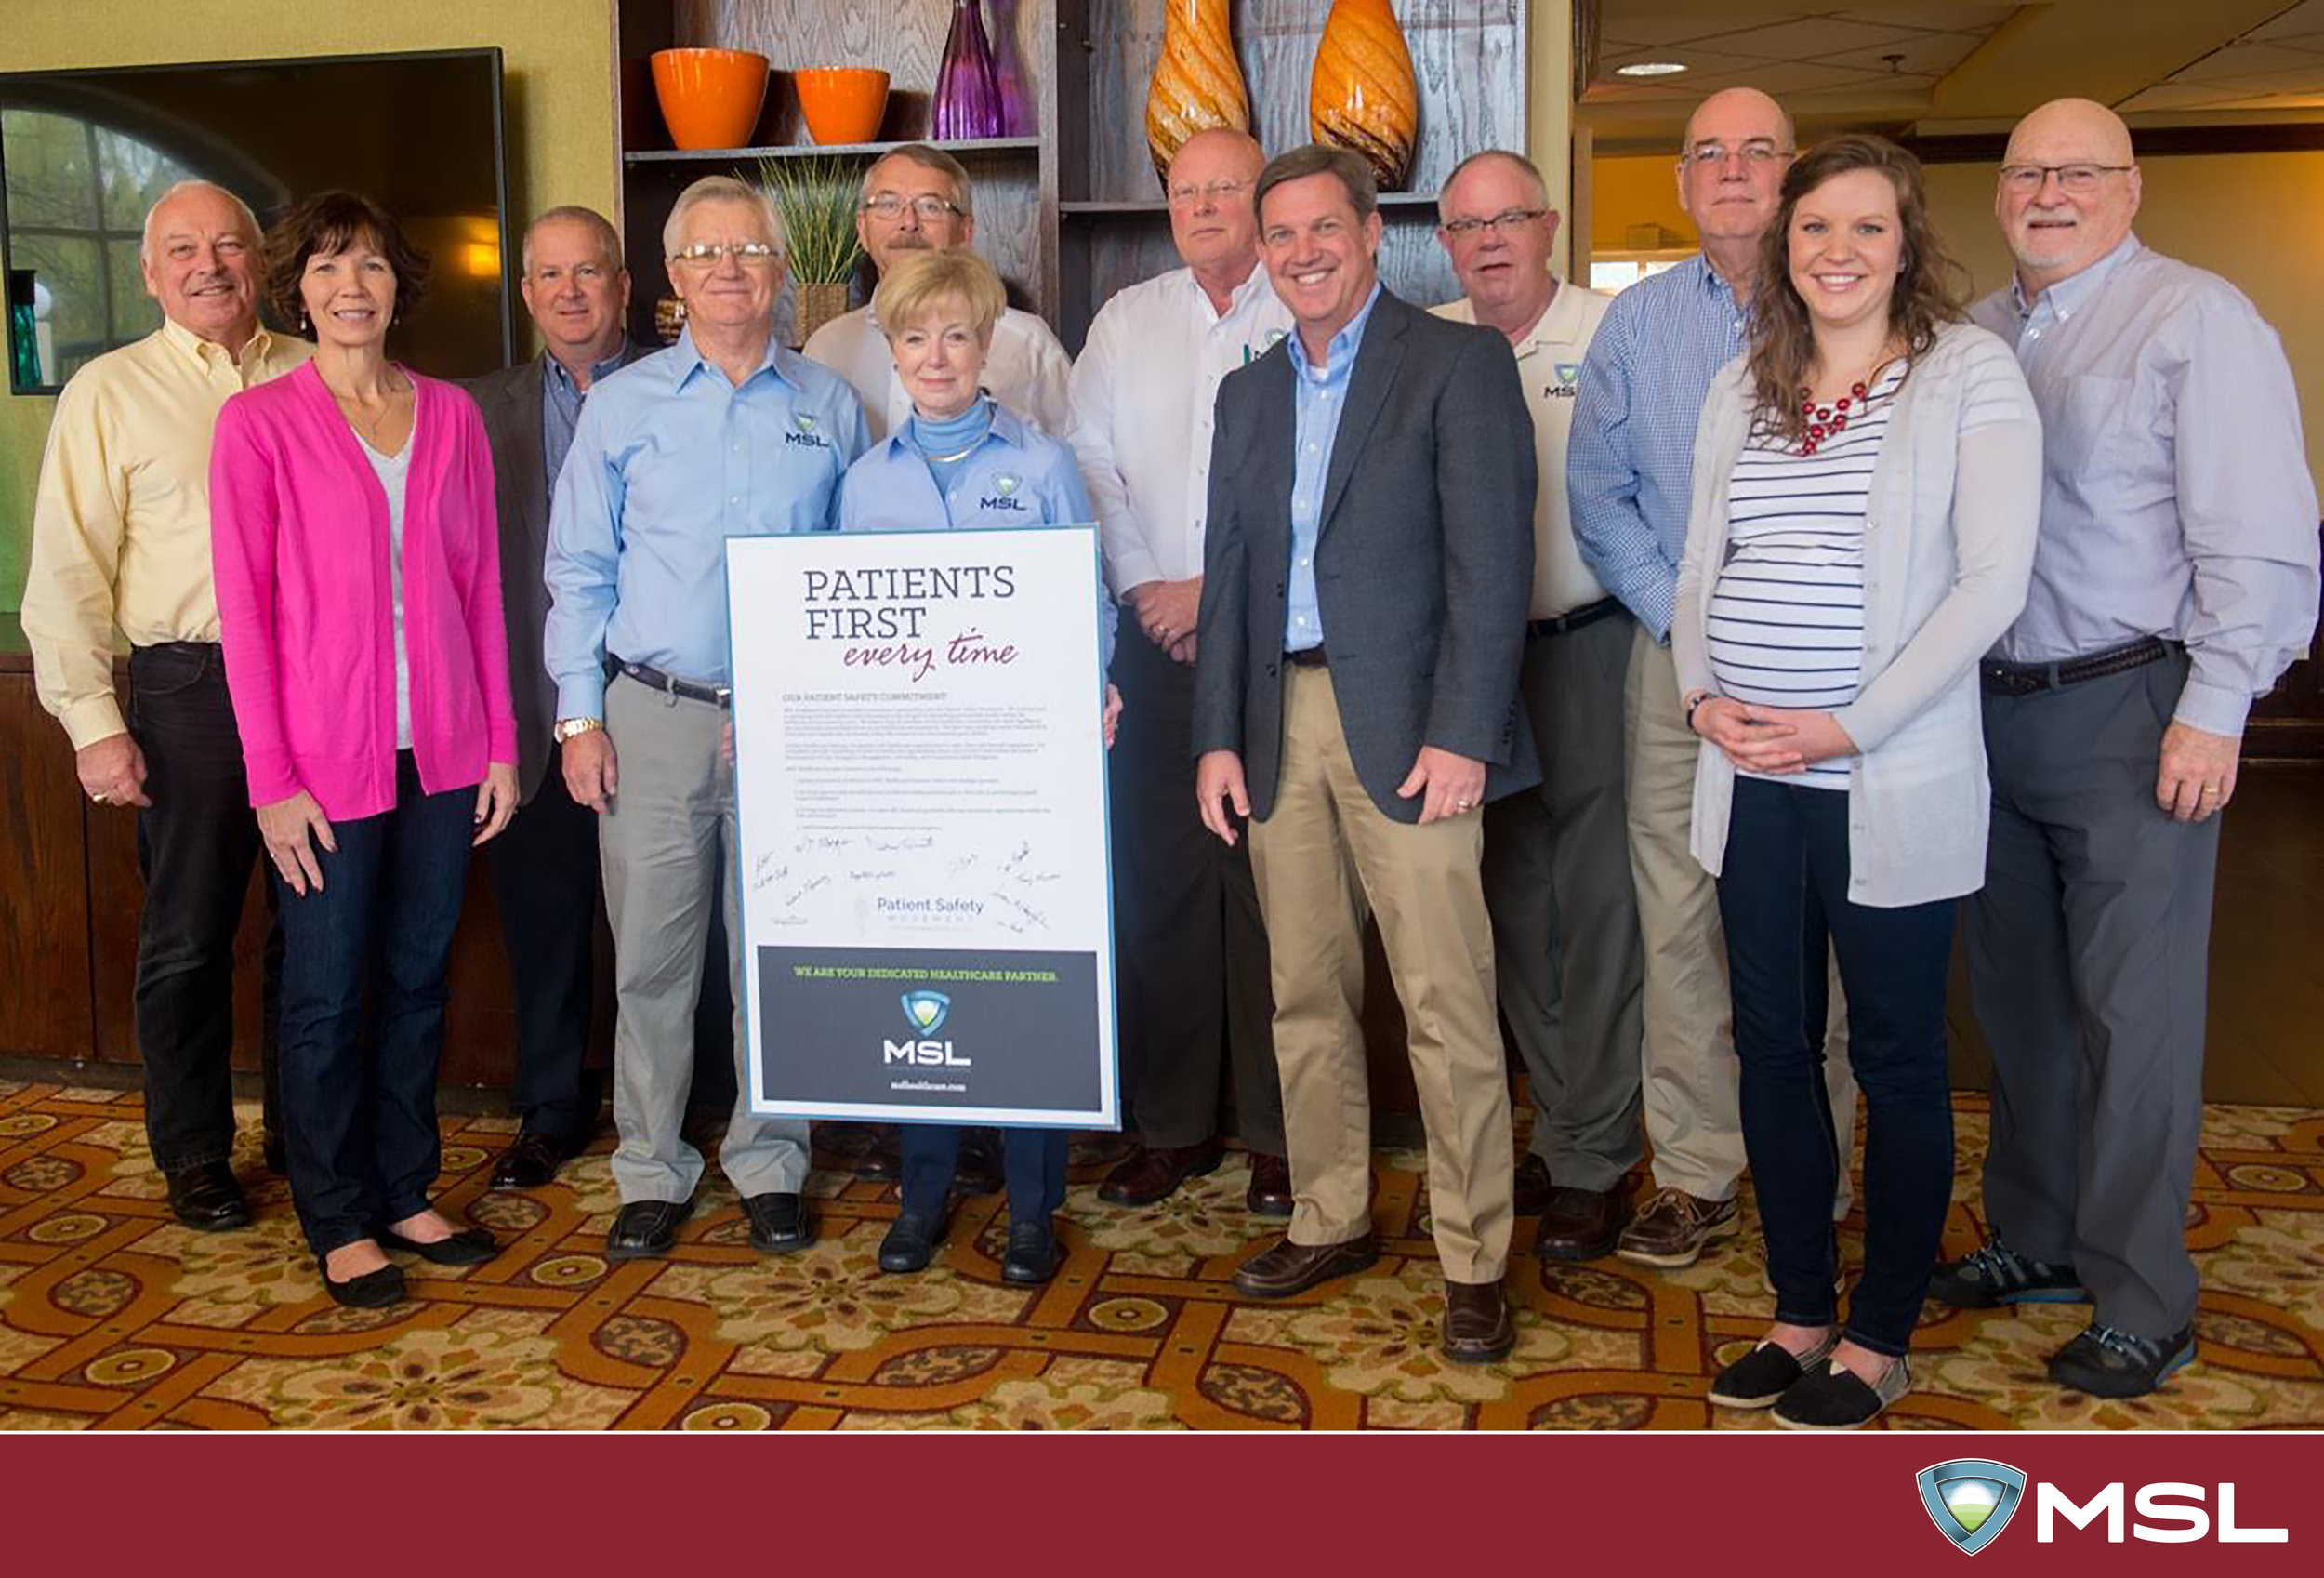 The MSL Team makes a commitment to the Patient Safety Movement at the 2016 MSL Healthcare Annual Company Meeting.